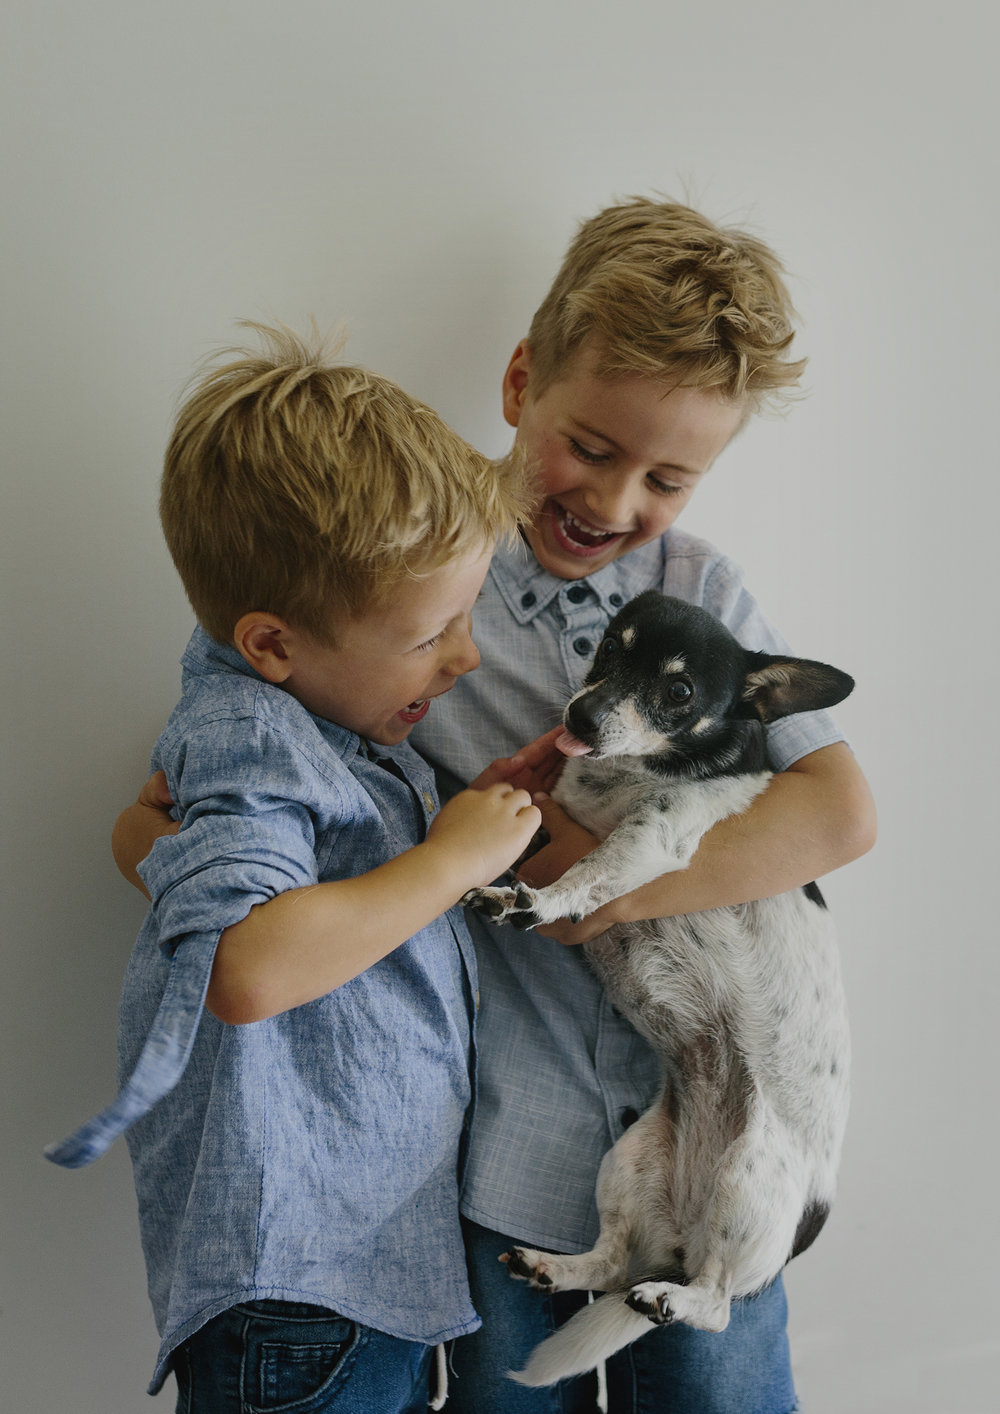 Brothers playing with their puppy dog